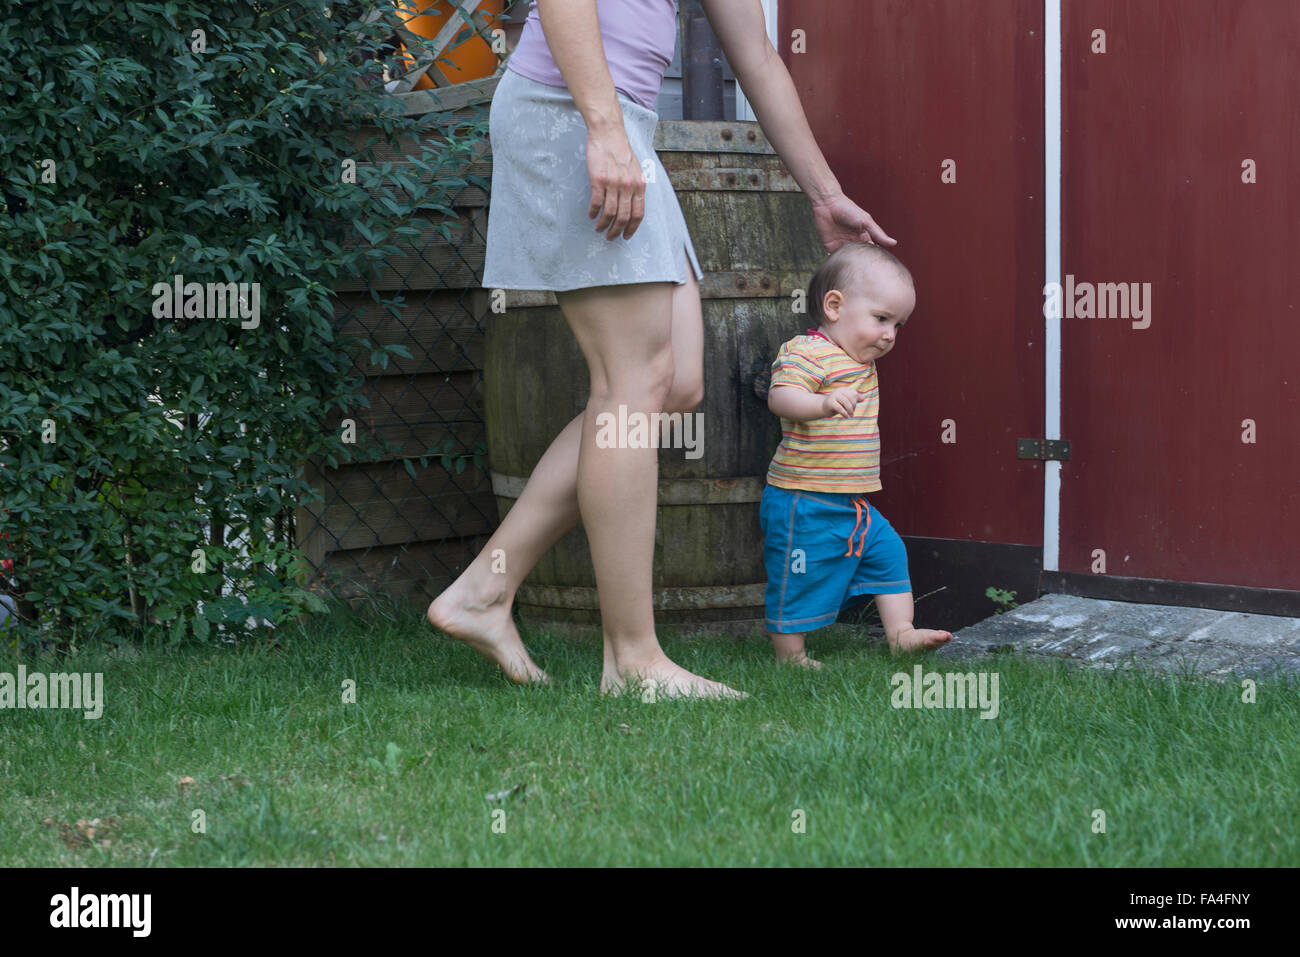 Mother assisting her baby son walking upright, Munich, Bavaria, Germany - Stock Image